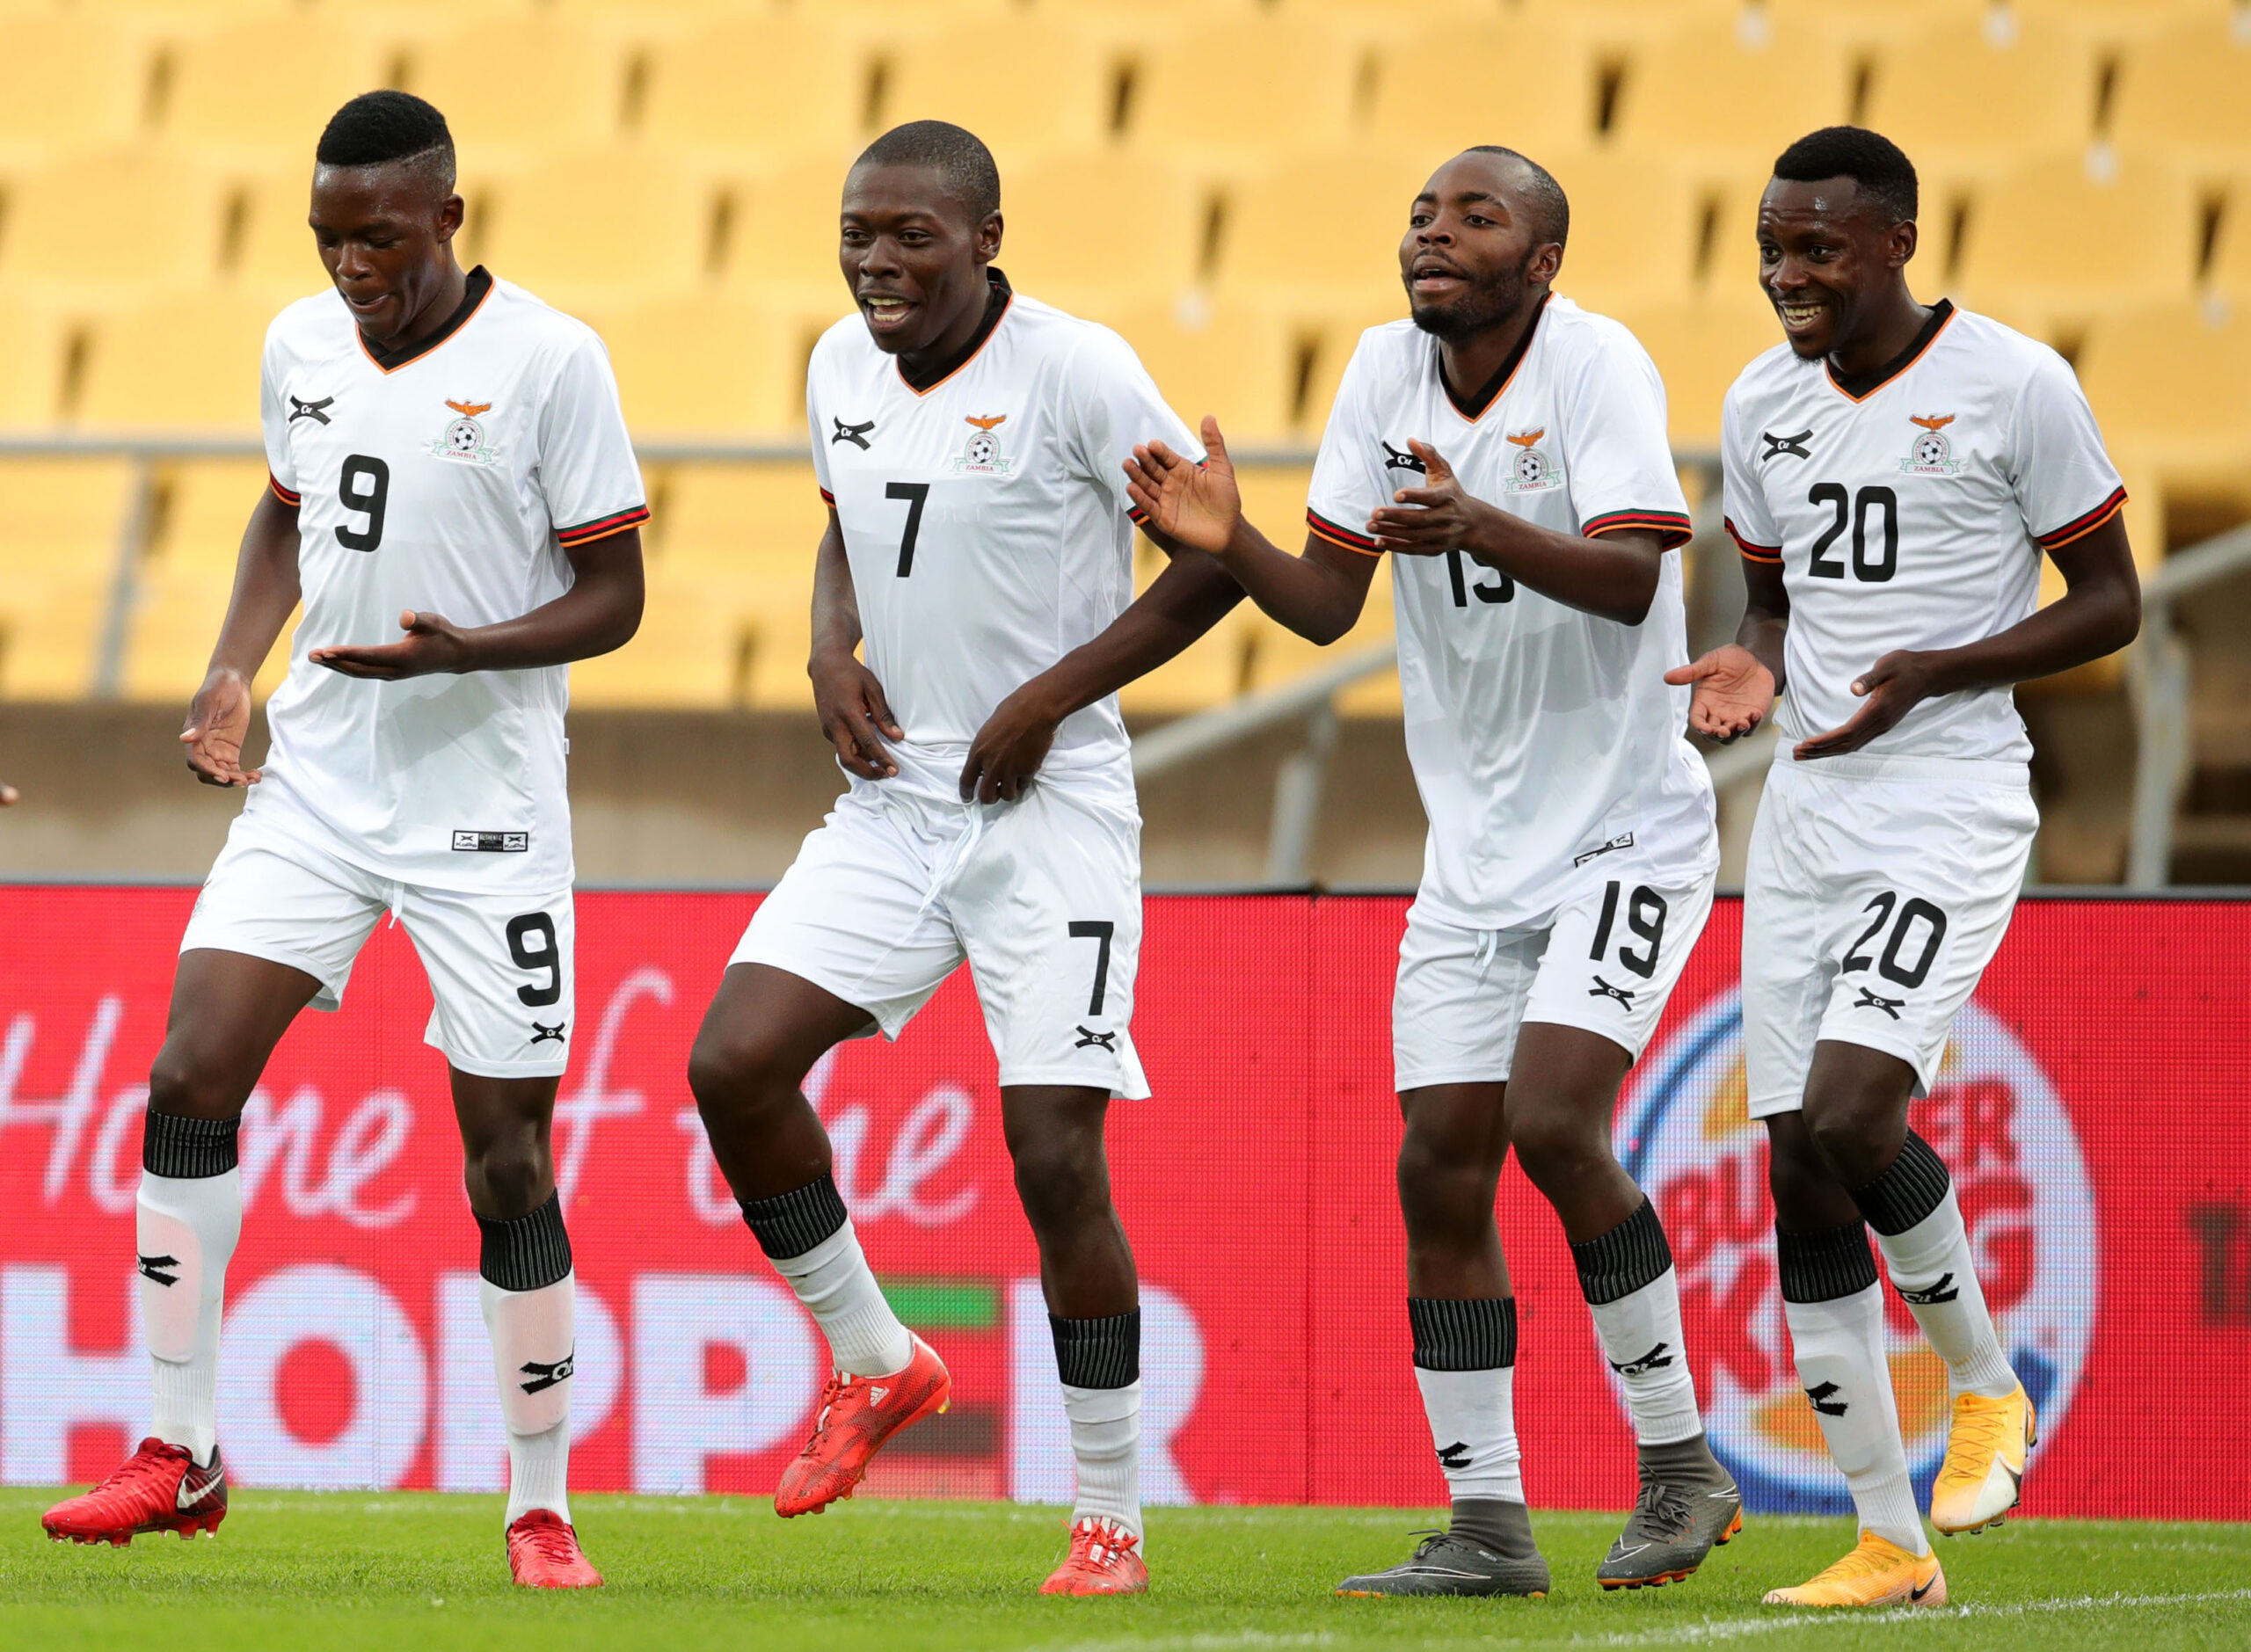 Chipolopolo Road to Qatar 2022 Unveiled